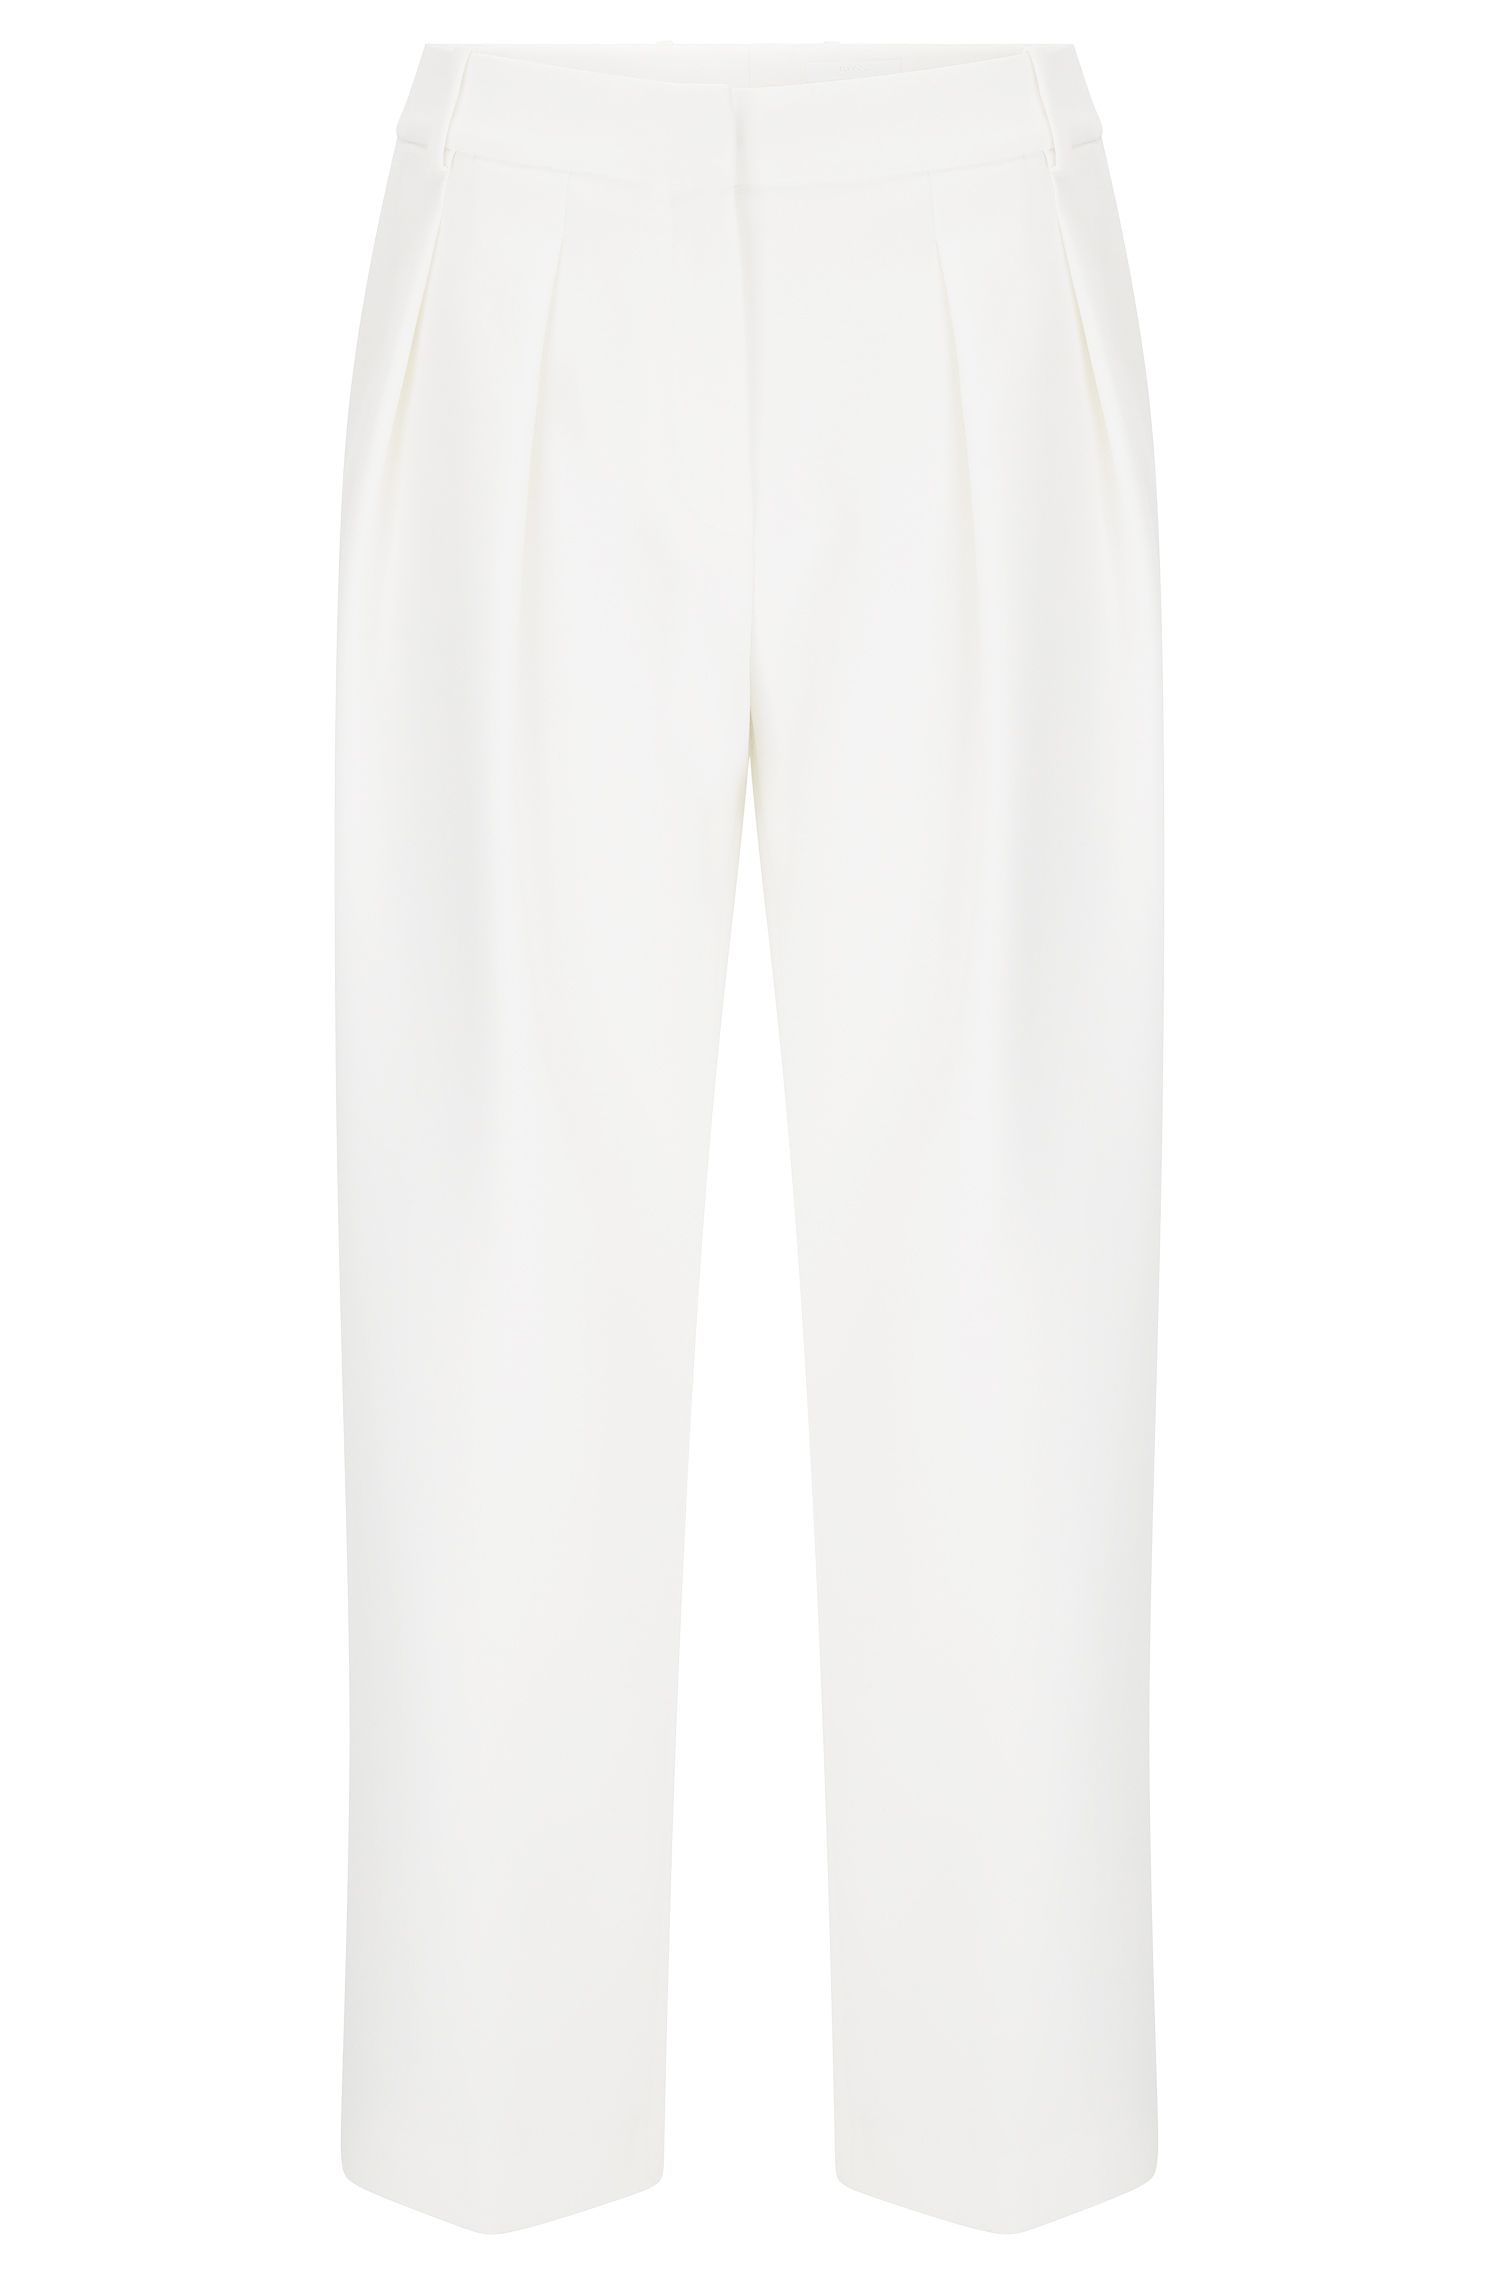 'Tomida' | Stretch Cotton Blend Pleated Trousers